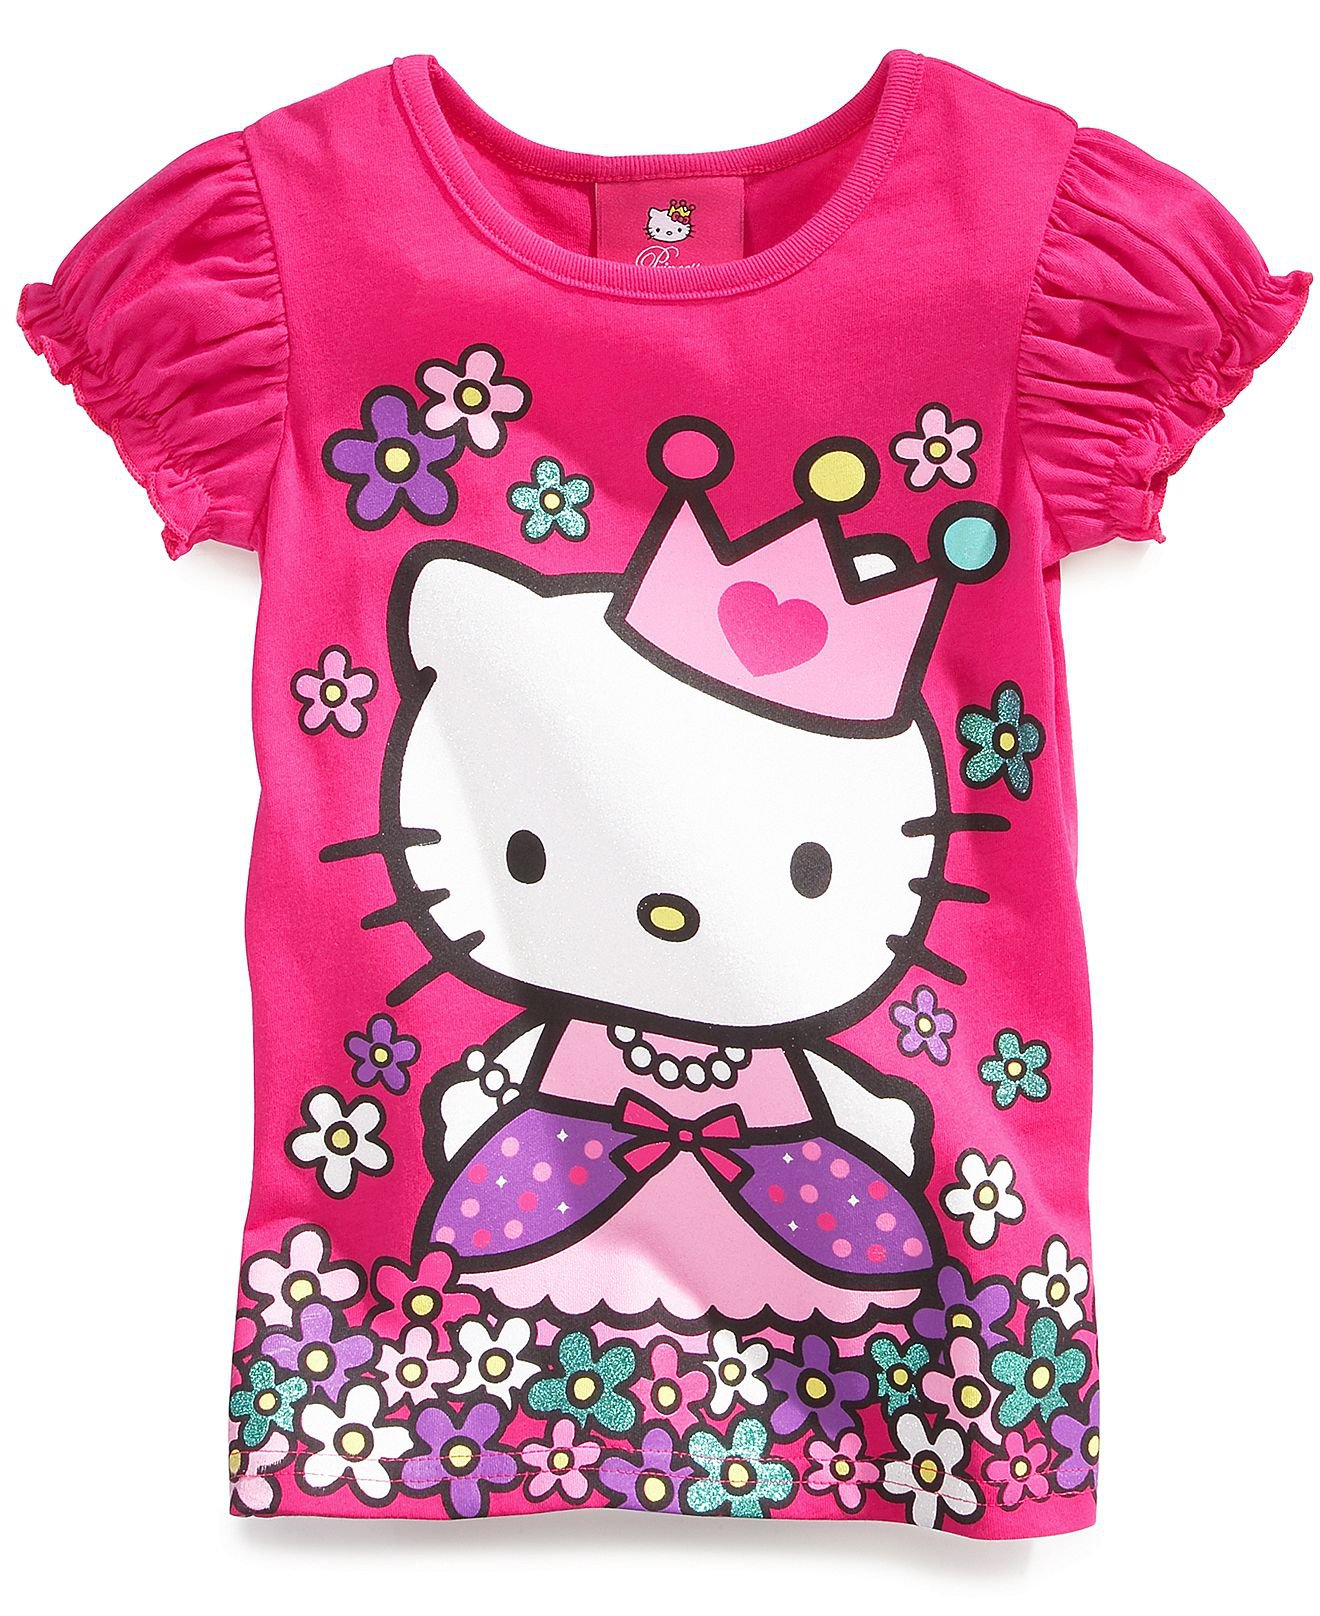 Hello kitty kids t shirts little girls from macys for Hello kitty t shirt design